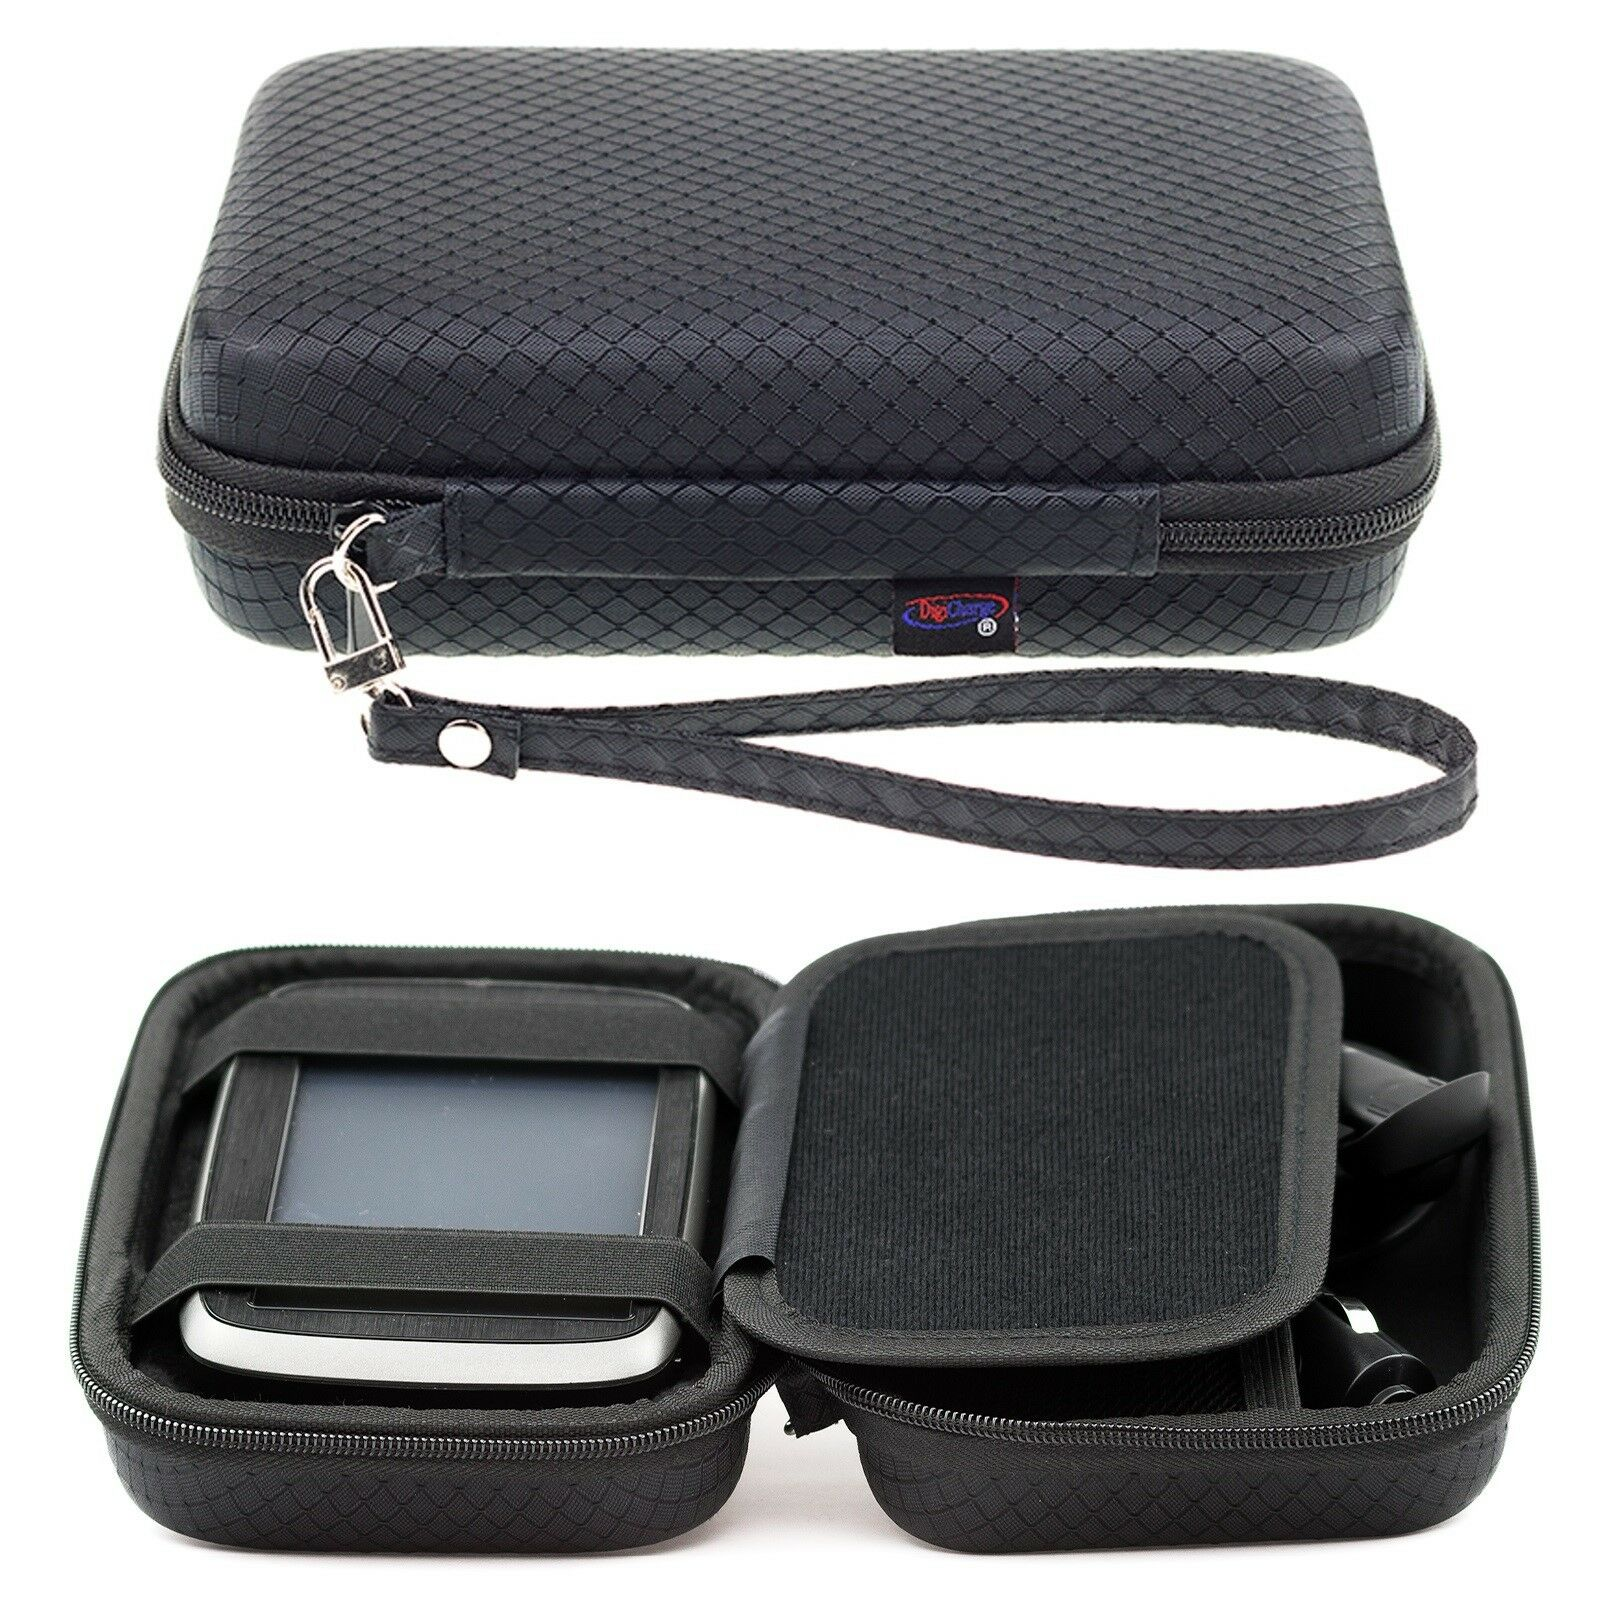 black hard carry case for tomtom go 5200 520 via start. Black Bedroom Furniture Sets. Home Design Ideas